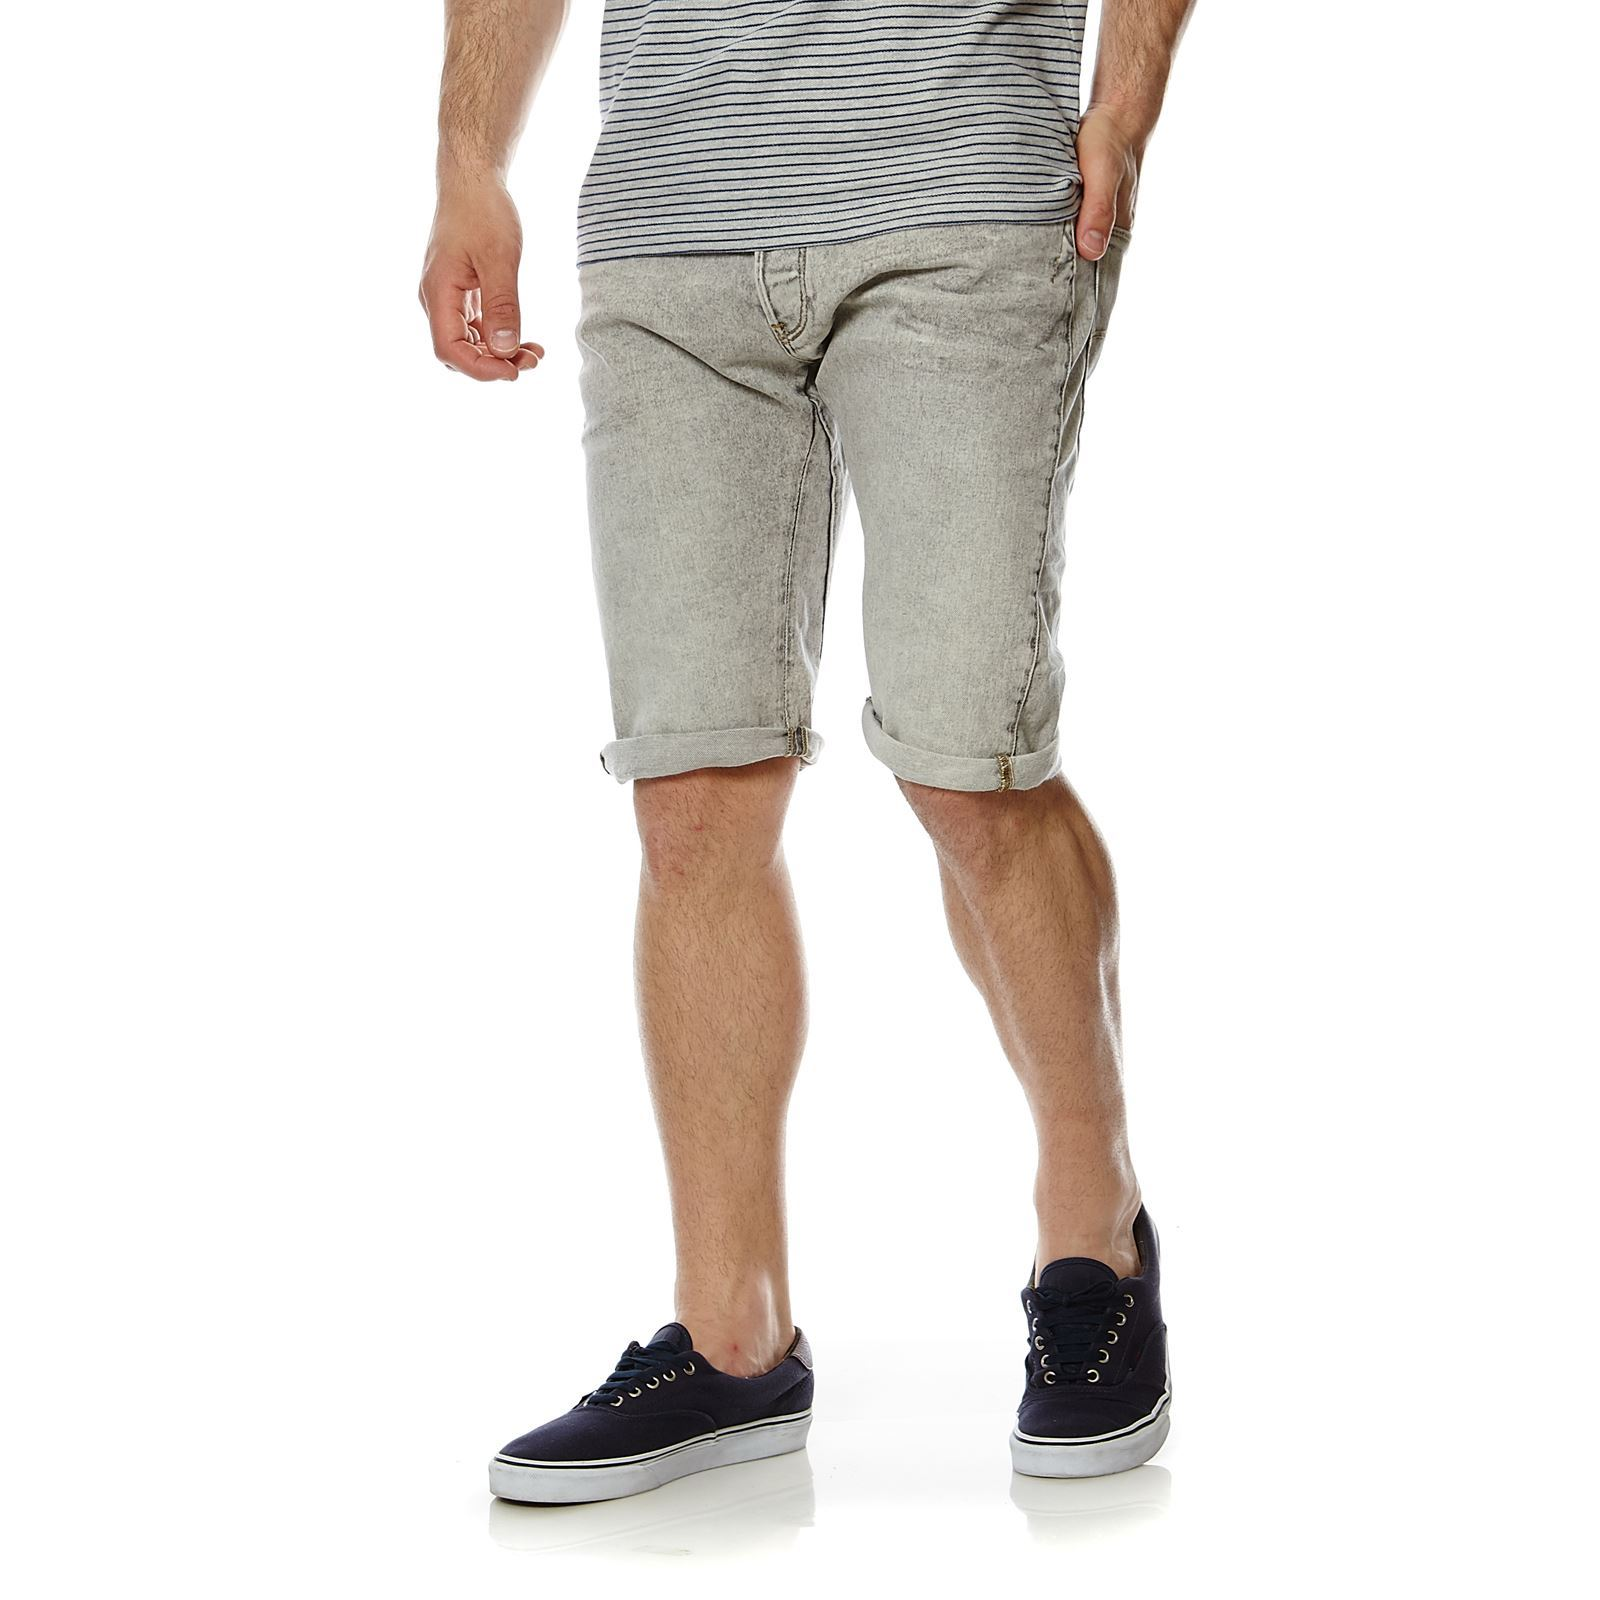 G Star Arc 3D short - Bermuda - gris chine